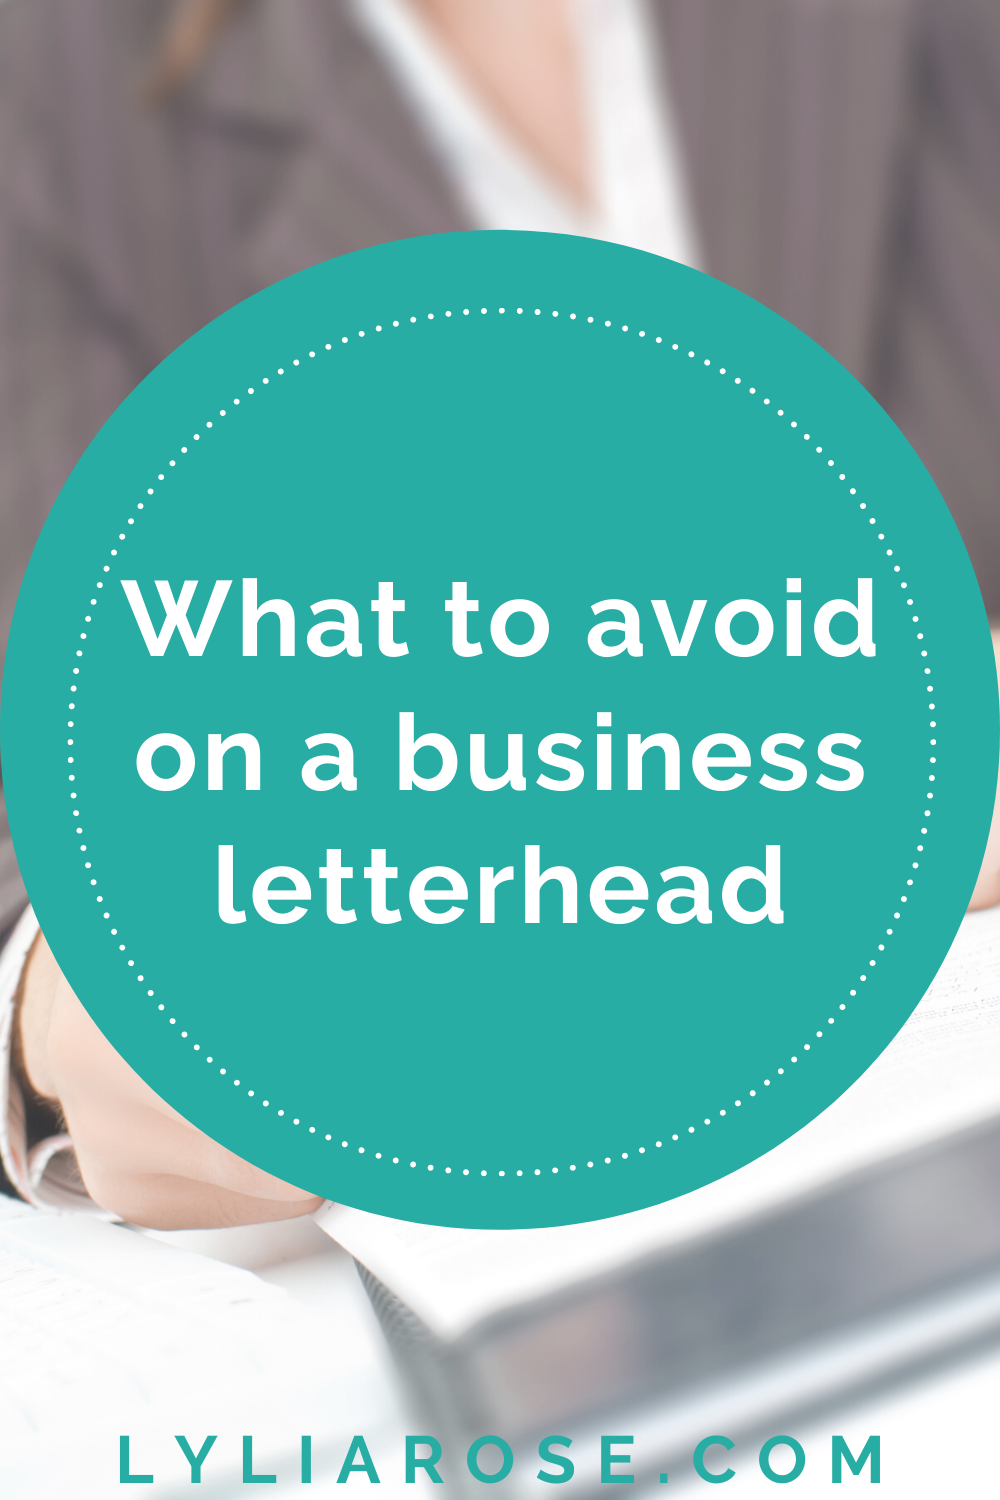 What to avoid on a business letterhead